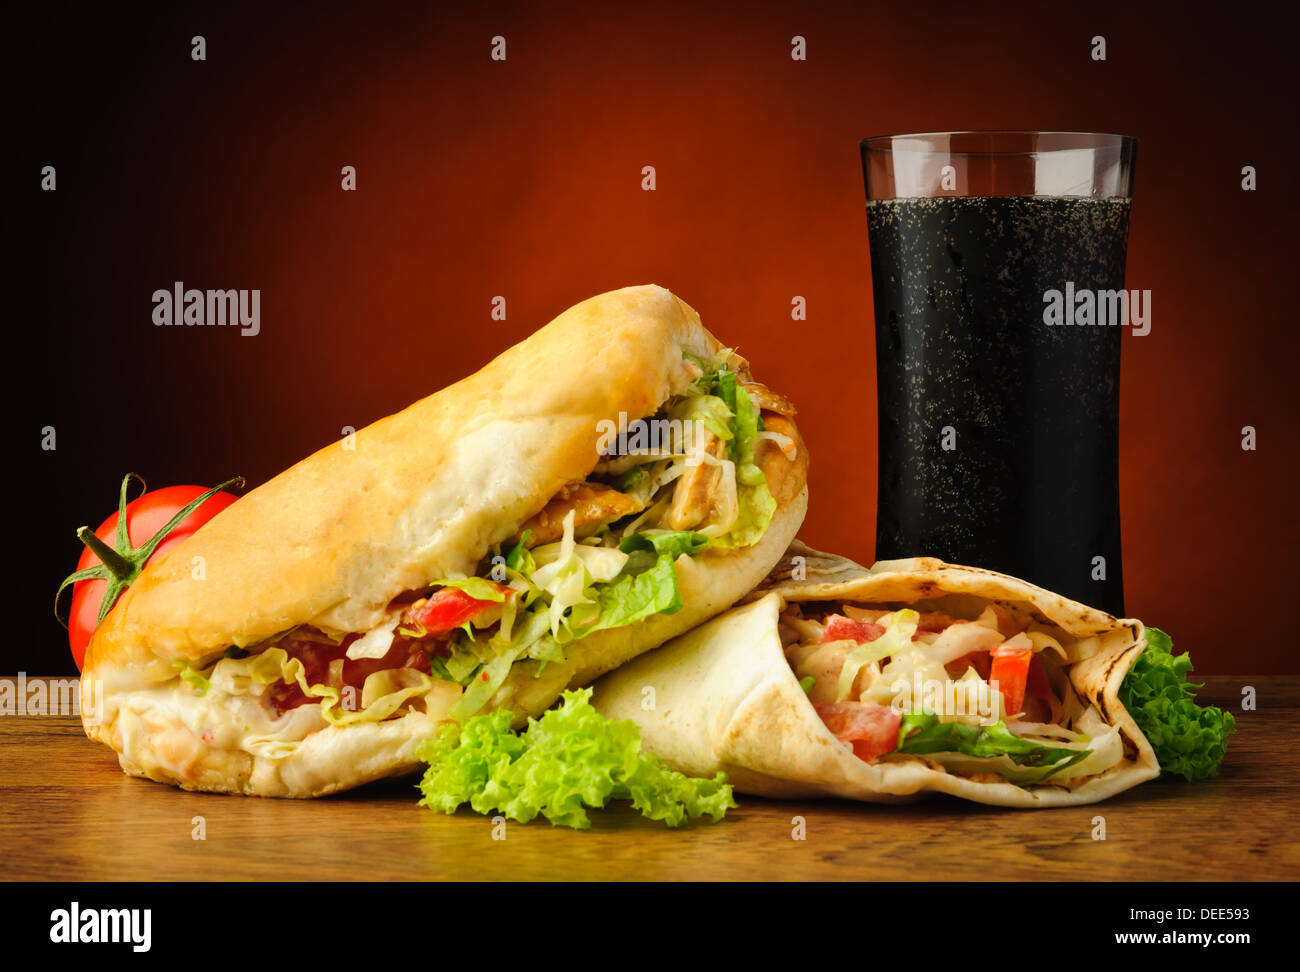 still life with traditional turkish doner kebab, shawarma and cola drink - Stock Image